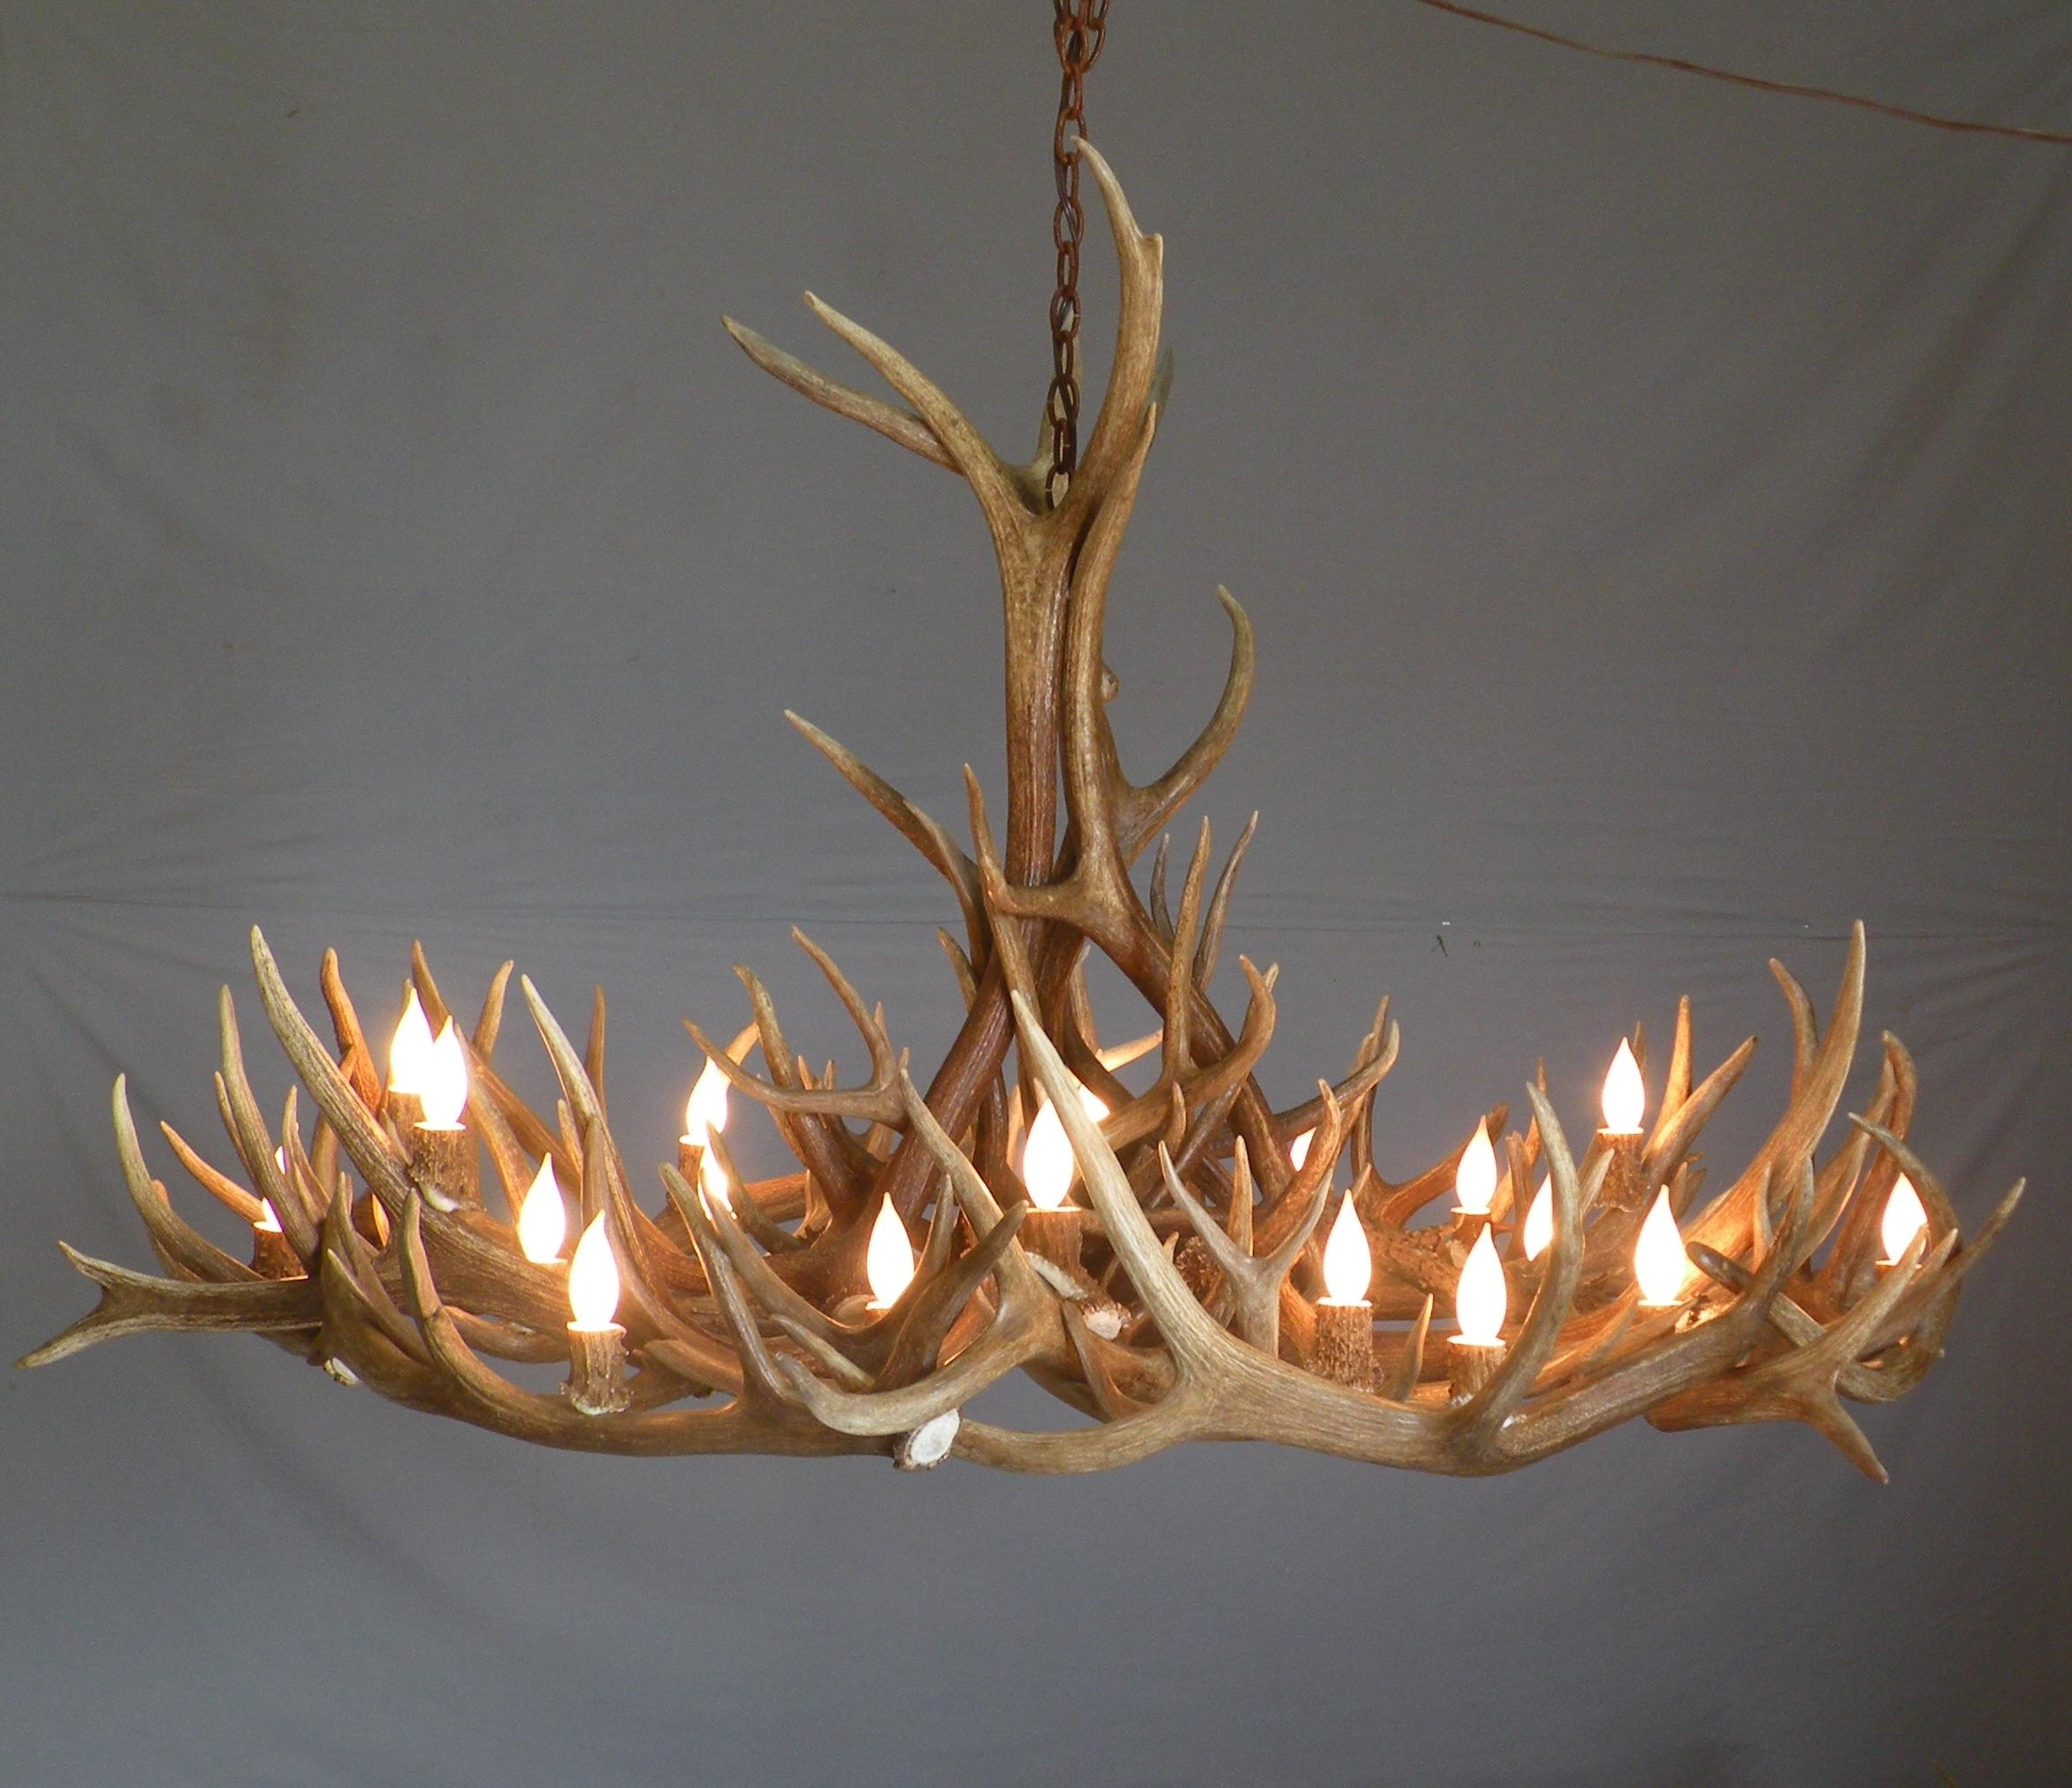 Unusual Chandeliers intended for Well known Furniture. Beautiful Chandeliers Target For Lighting And Ceiling